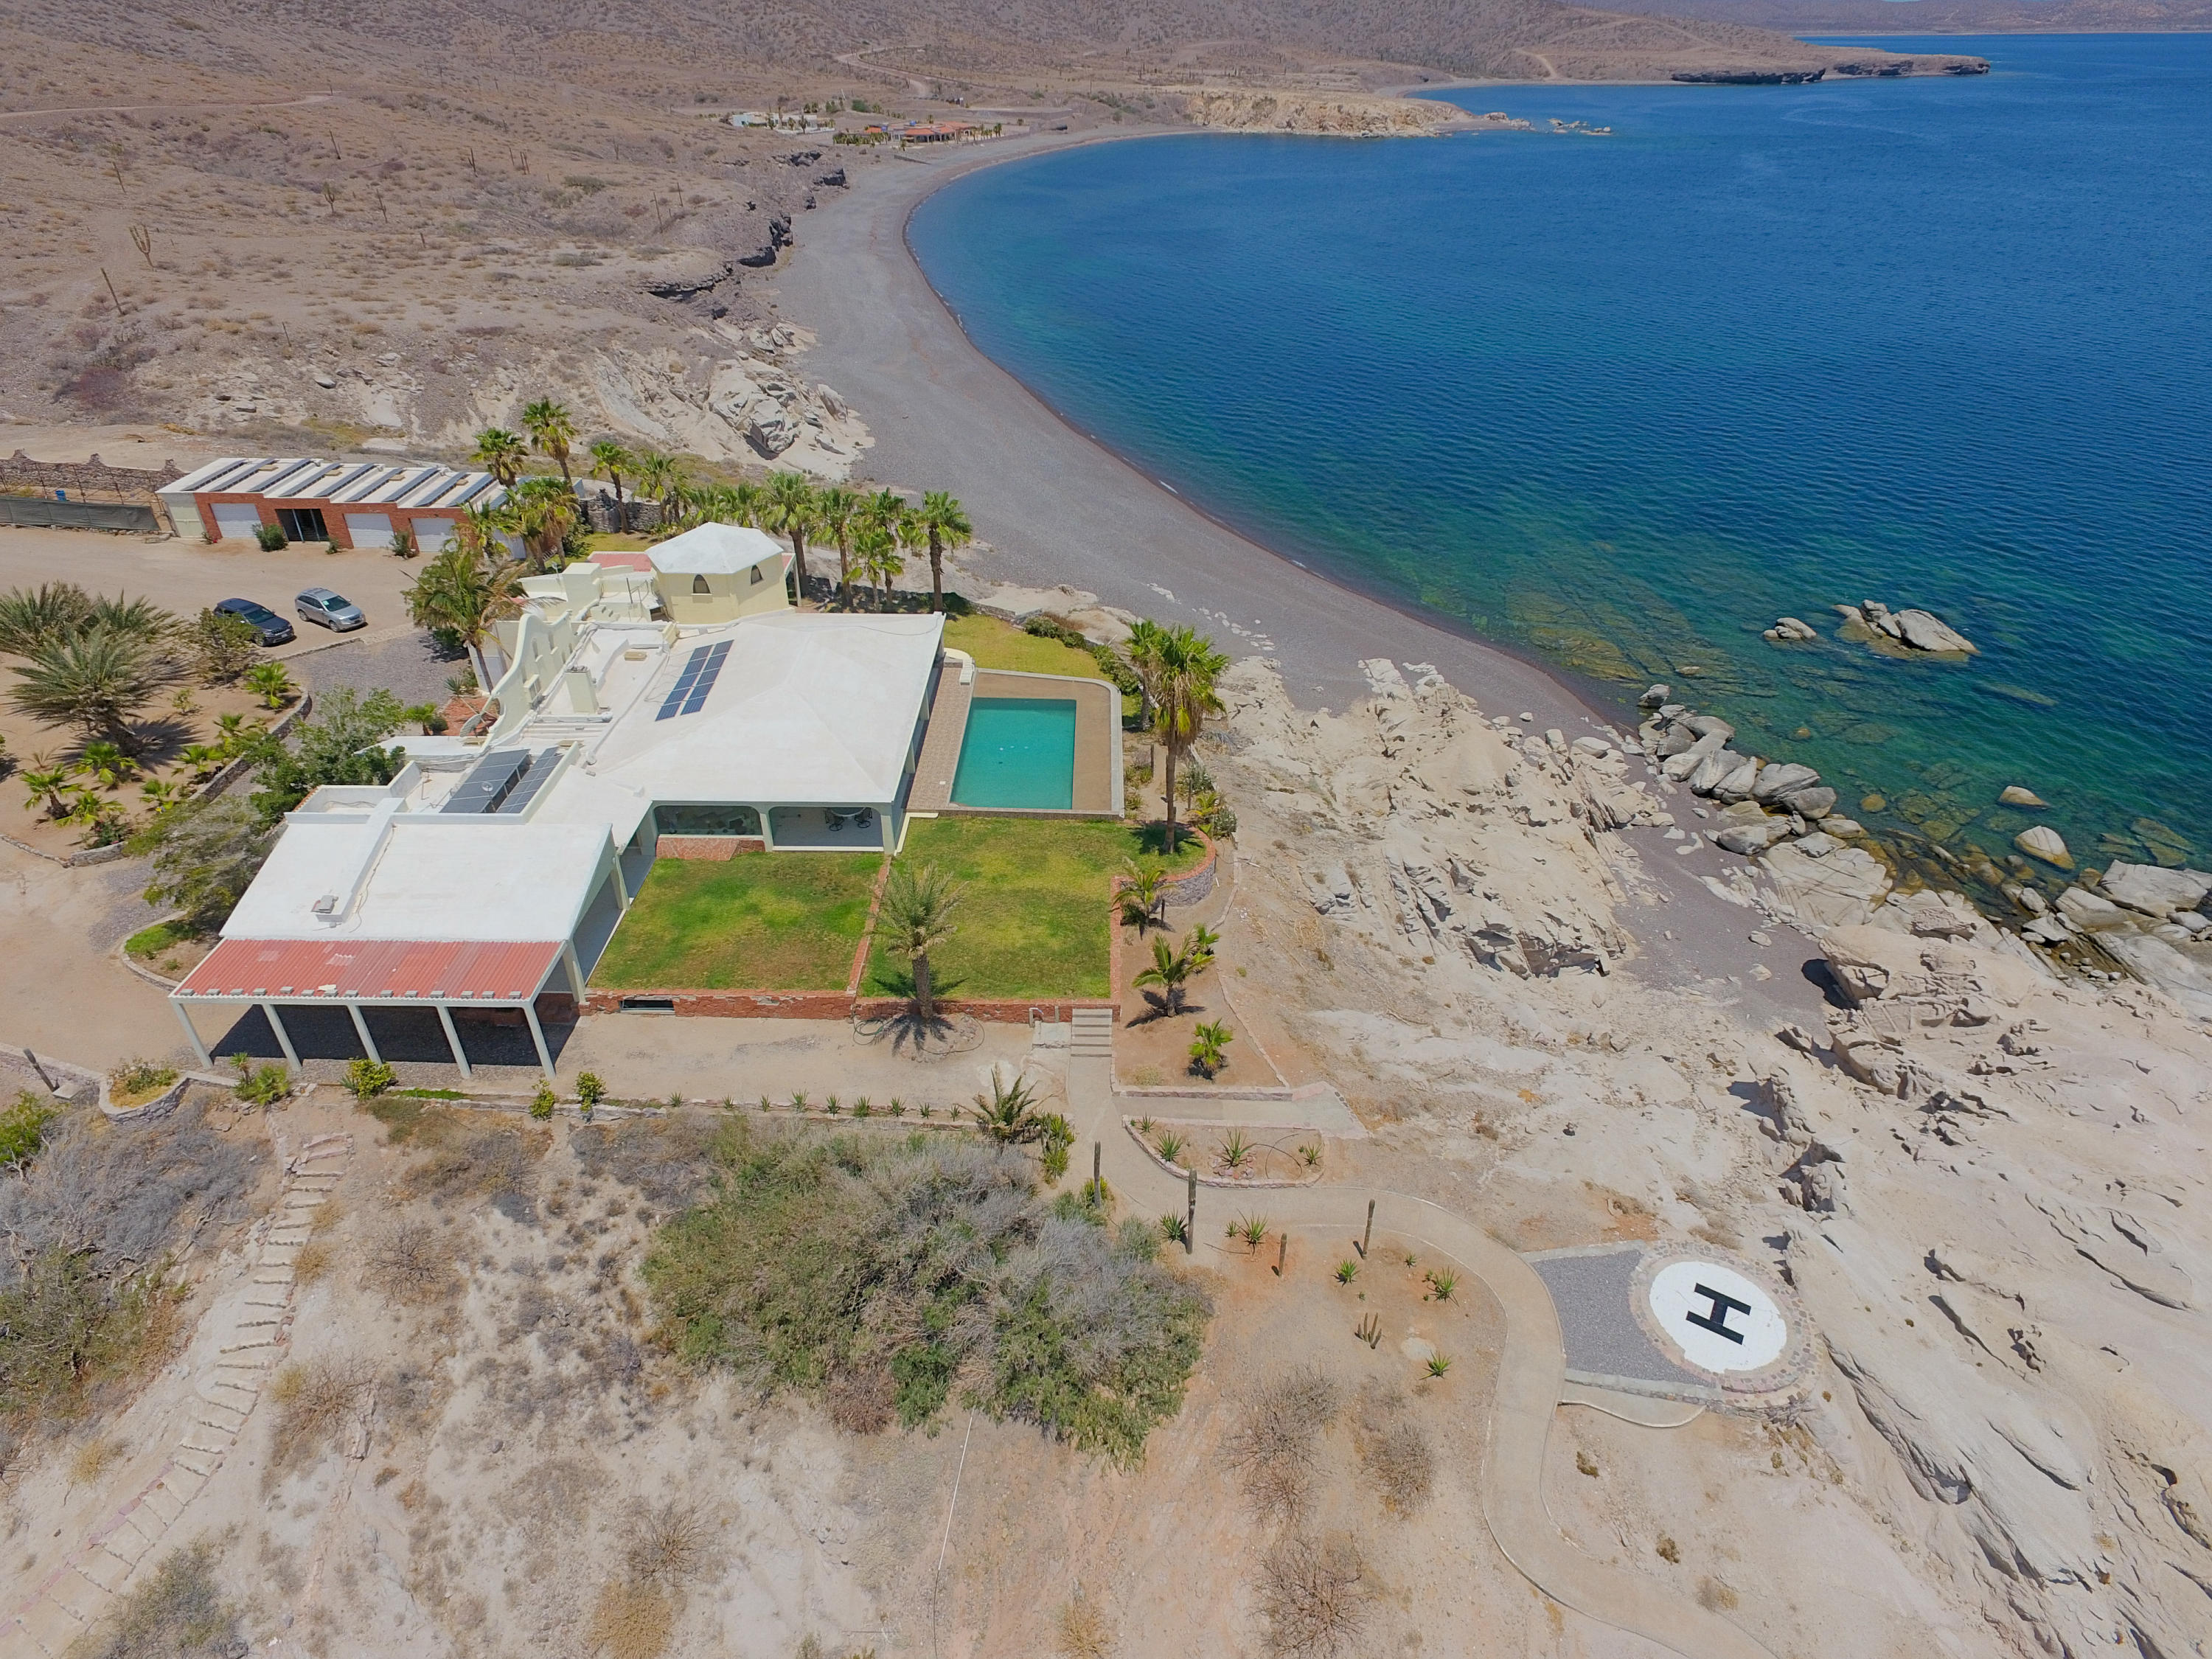 Luxurious, off-grid living in the remote beauty of the Sea of Cortez.This unique 114.6 acre estate sits on a bluff perched over a secluded, picture perfect cove surrounded by white sand beaches along the Sea of Cortez.  This gem has a dominating view of the islands of Cerralvo and Espiritu Santo. With over three hundred days a year of sun, you will be greeted almost daily by dolphins, manta rays whales and fish.  This is an ideal property for nature lovers and outdoors enthusiasts alike to enjoy hiking, swimming, snorkeling, fishing, paddle boarding, kite surfing and a myriad of other options.This luxurious property is completely self sufficient.  Water is provided by a solar operated desalination plant which was created by the seller. He also designed 2 water treatment plants.  Together, they deliver over 4,000 gallons of water a day, enough to irrigate the 200 trees and plants as well as the 2 acres of lawn and the 3 vegetable gardens.  The property also has energy collection capabilities by way of 50 KW (p) PV panels, stored in 432 L16 batteries.    The Cove at La Paz has multiple structures on site.  A lovely 7,000 square foot 3 bedroom home with a stunning fresh water swimming pool, 2 large garages, a fully equipped carpenter and machine workshop, a boat garage (with a 24ft. Catamaran power boat - two 115 HP Yamaha outboard motors) and 2 live-in caretaker homes. All sit on a bluff above a completely secluded 300 meter sandy beach cove where you will find two lovely guest houses.